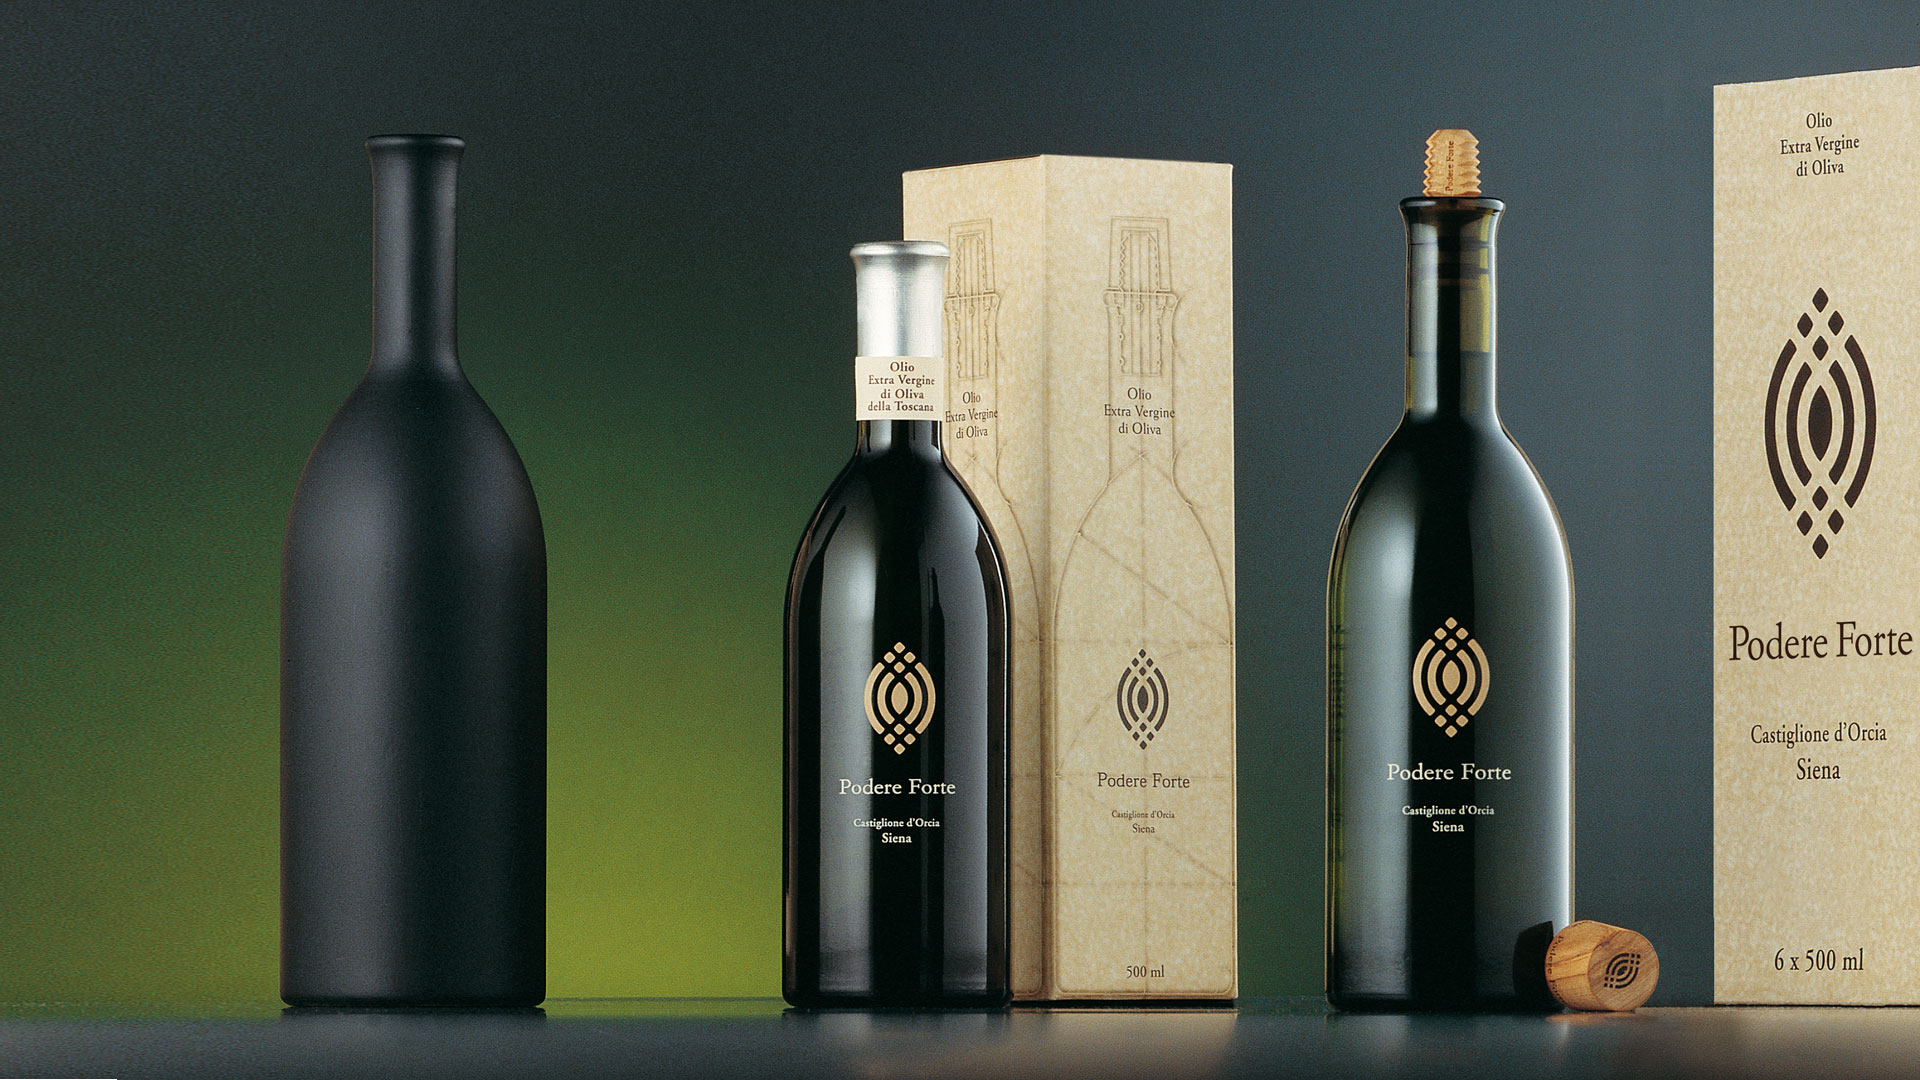 Podere Forte olio packaging